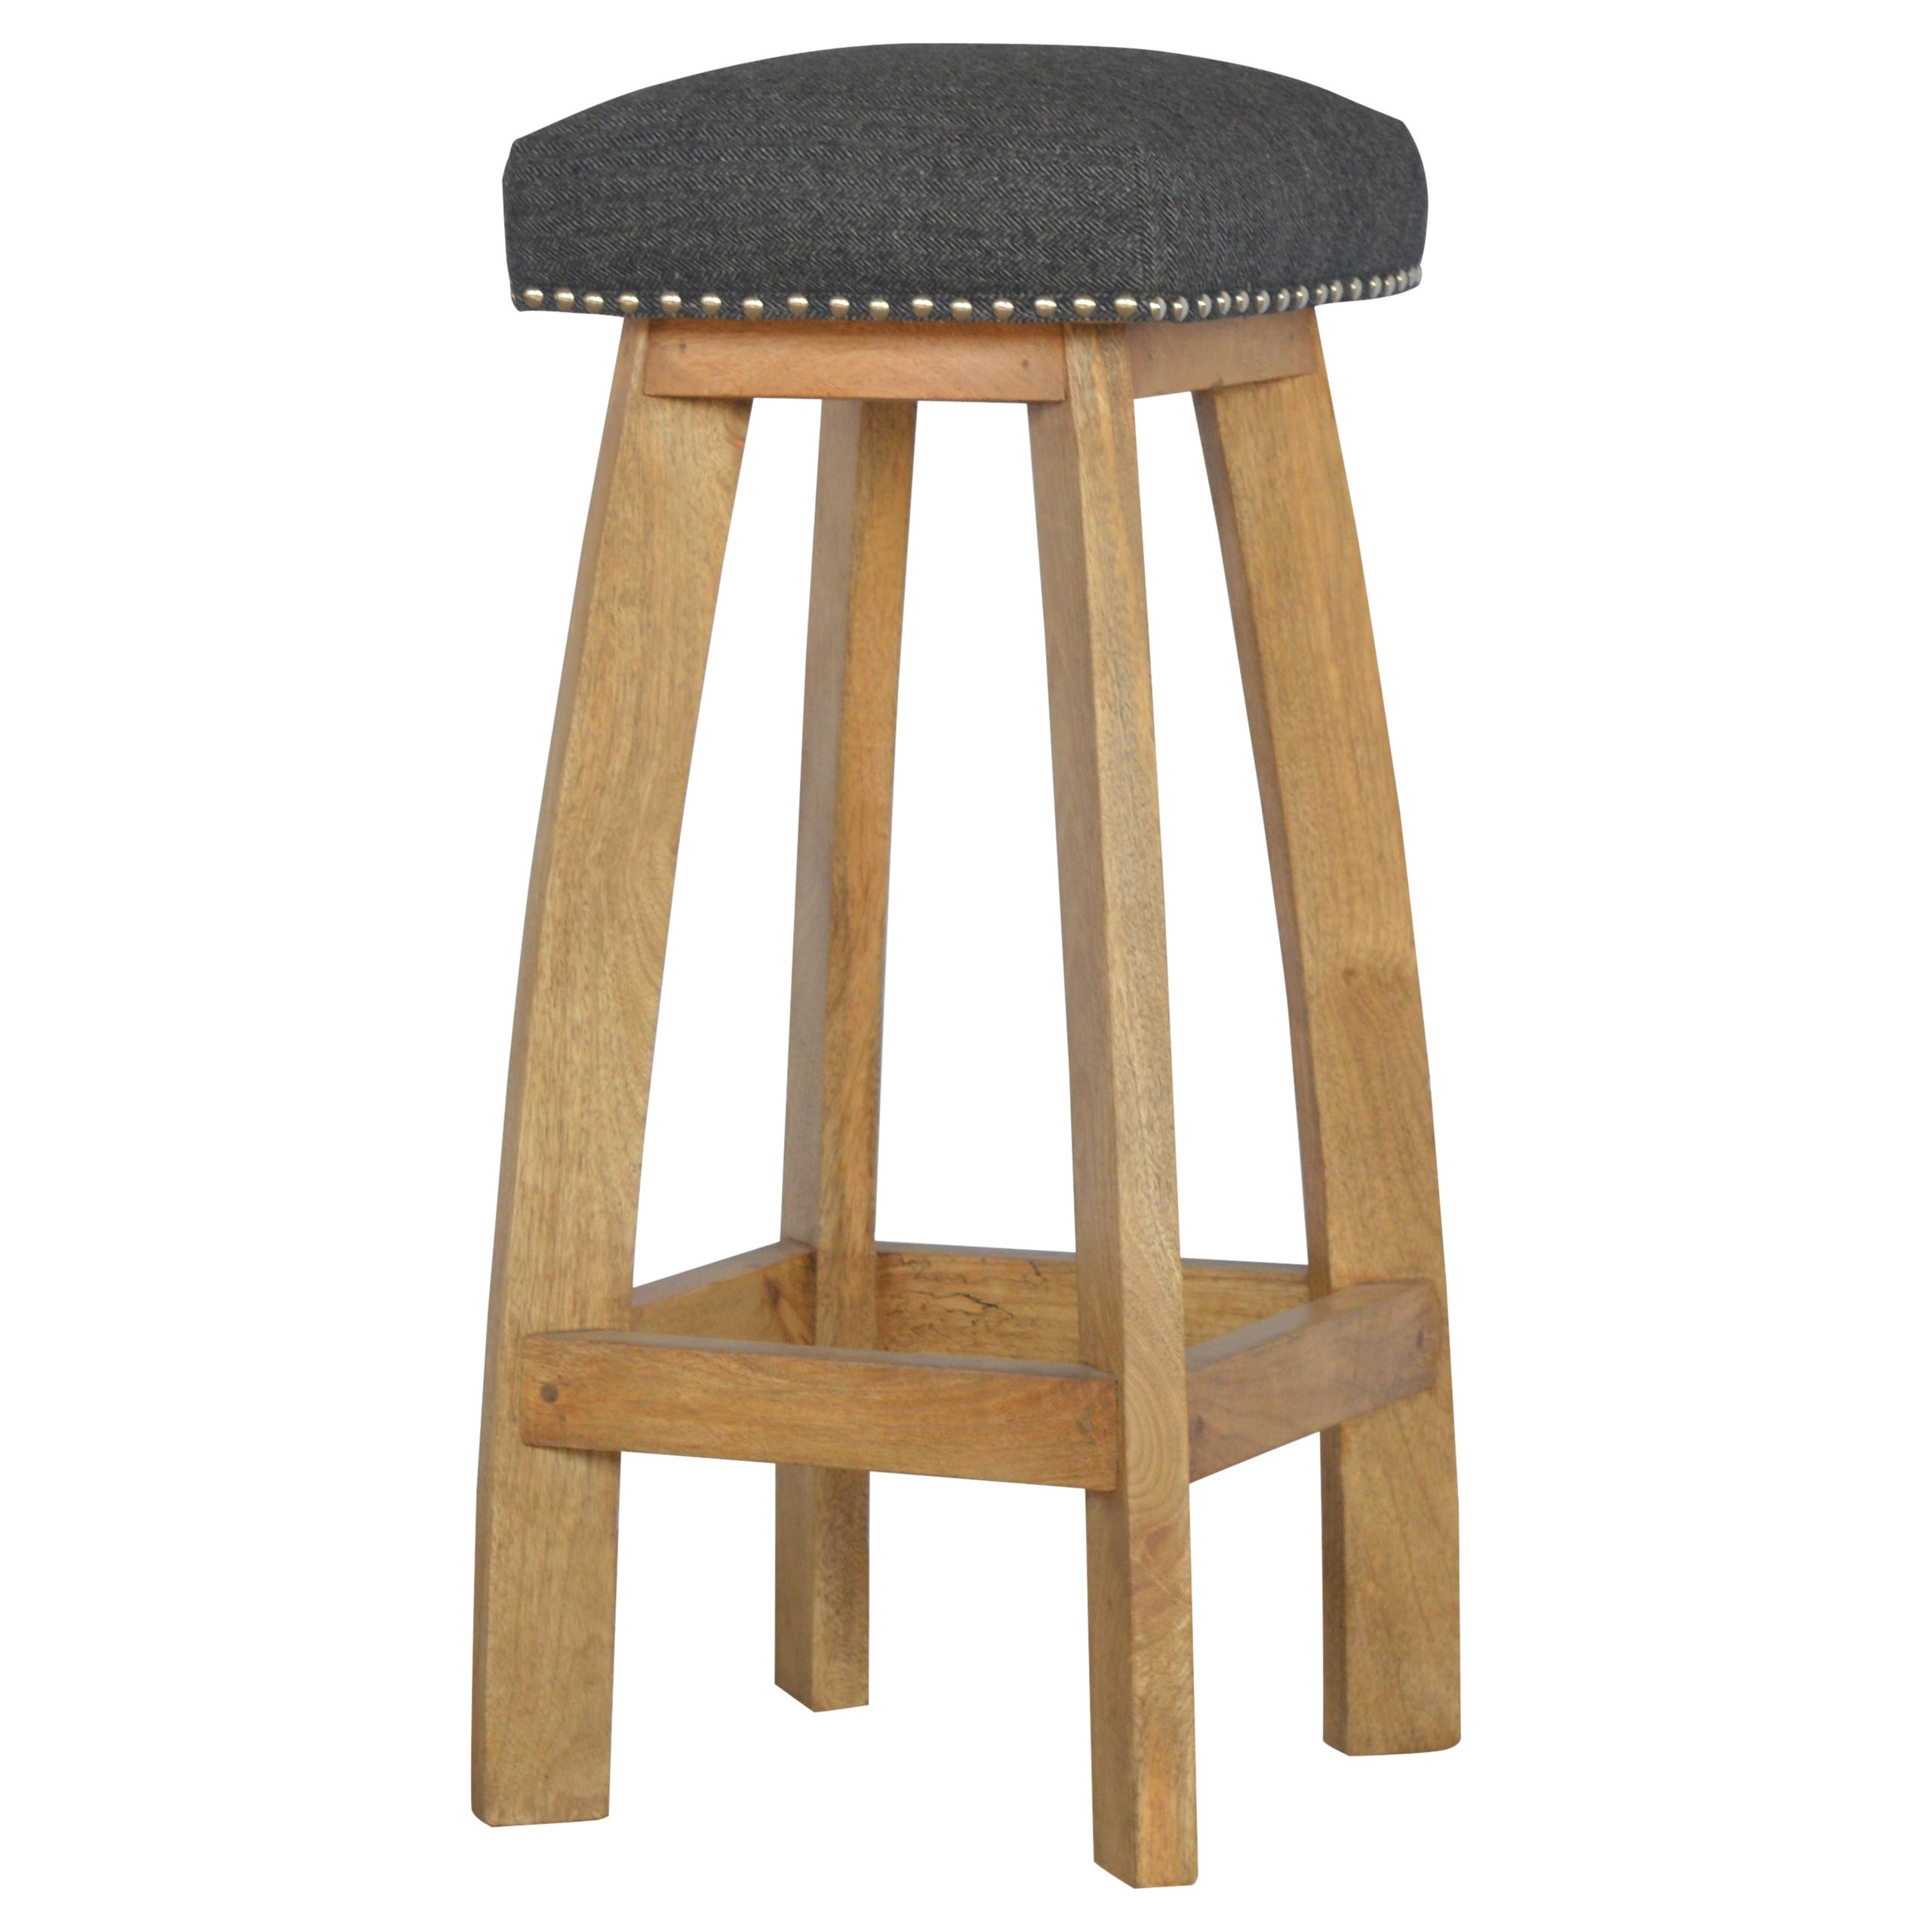 Barmöbel Set Strong Bar Stools Barhocker Wood Bar Stools Bar Stools Und